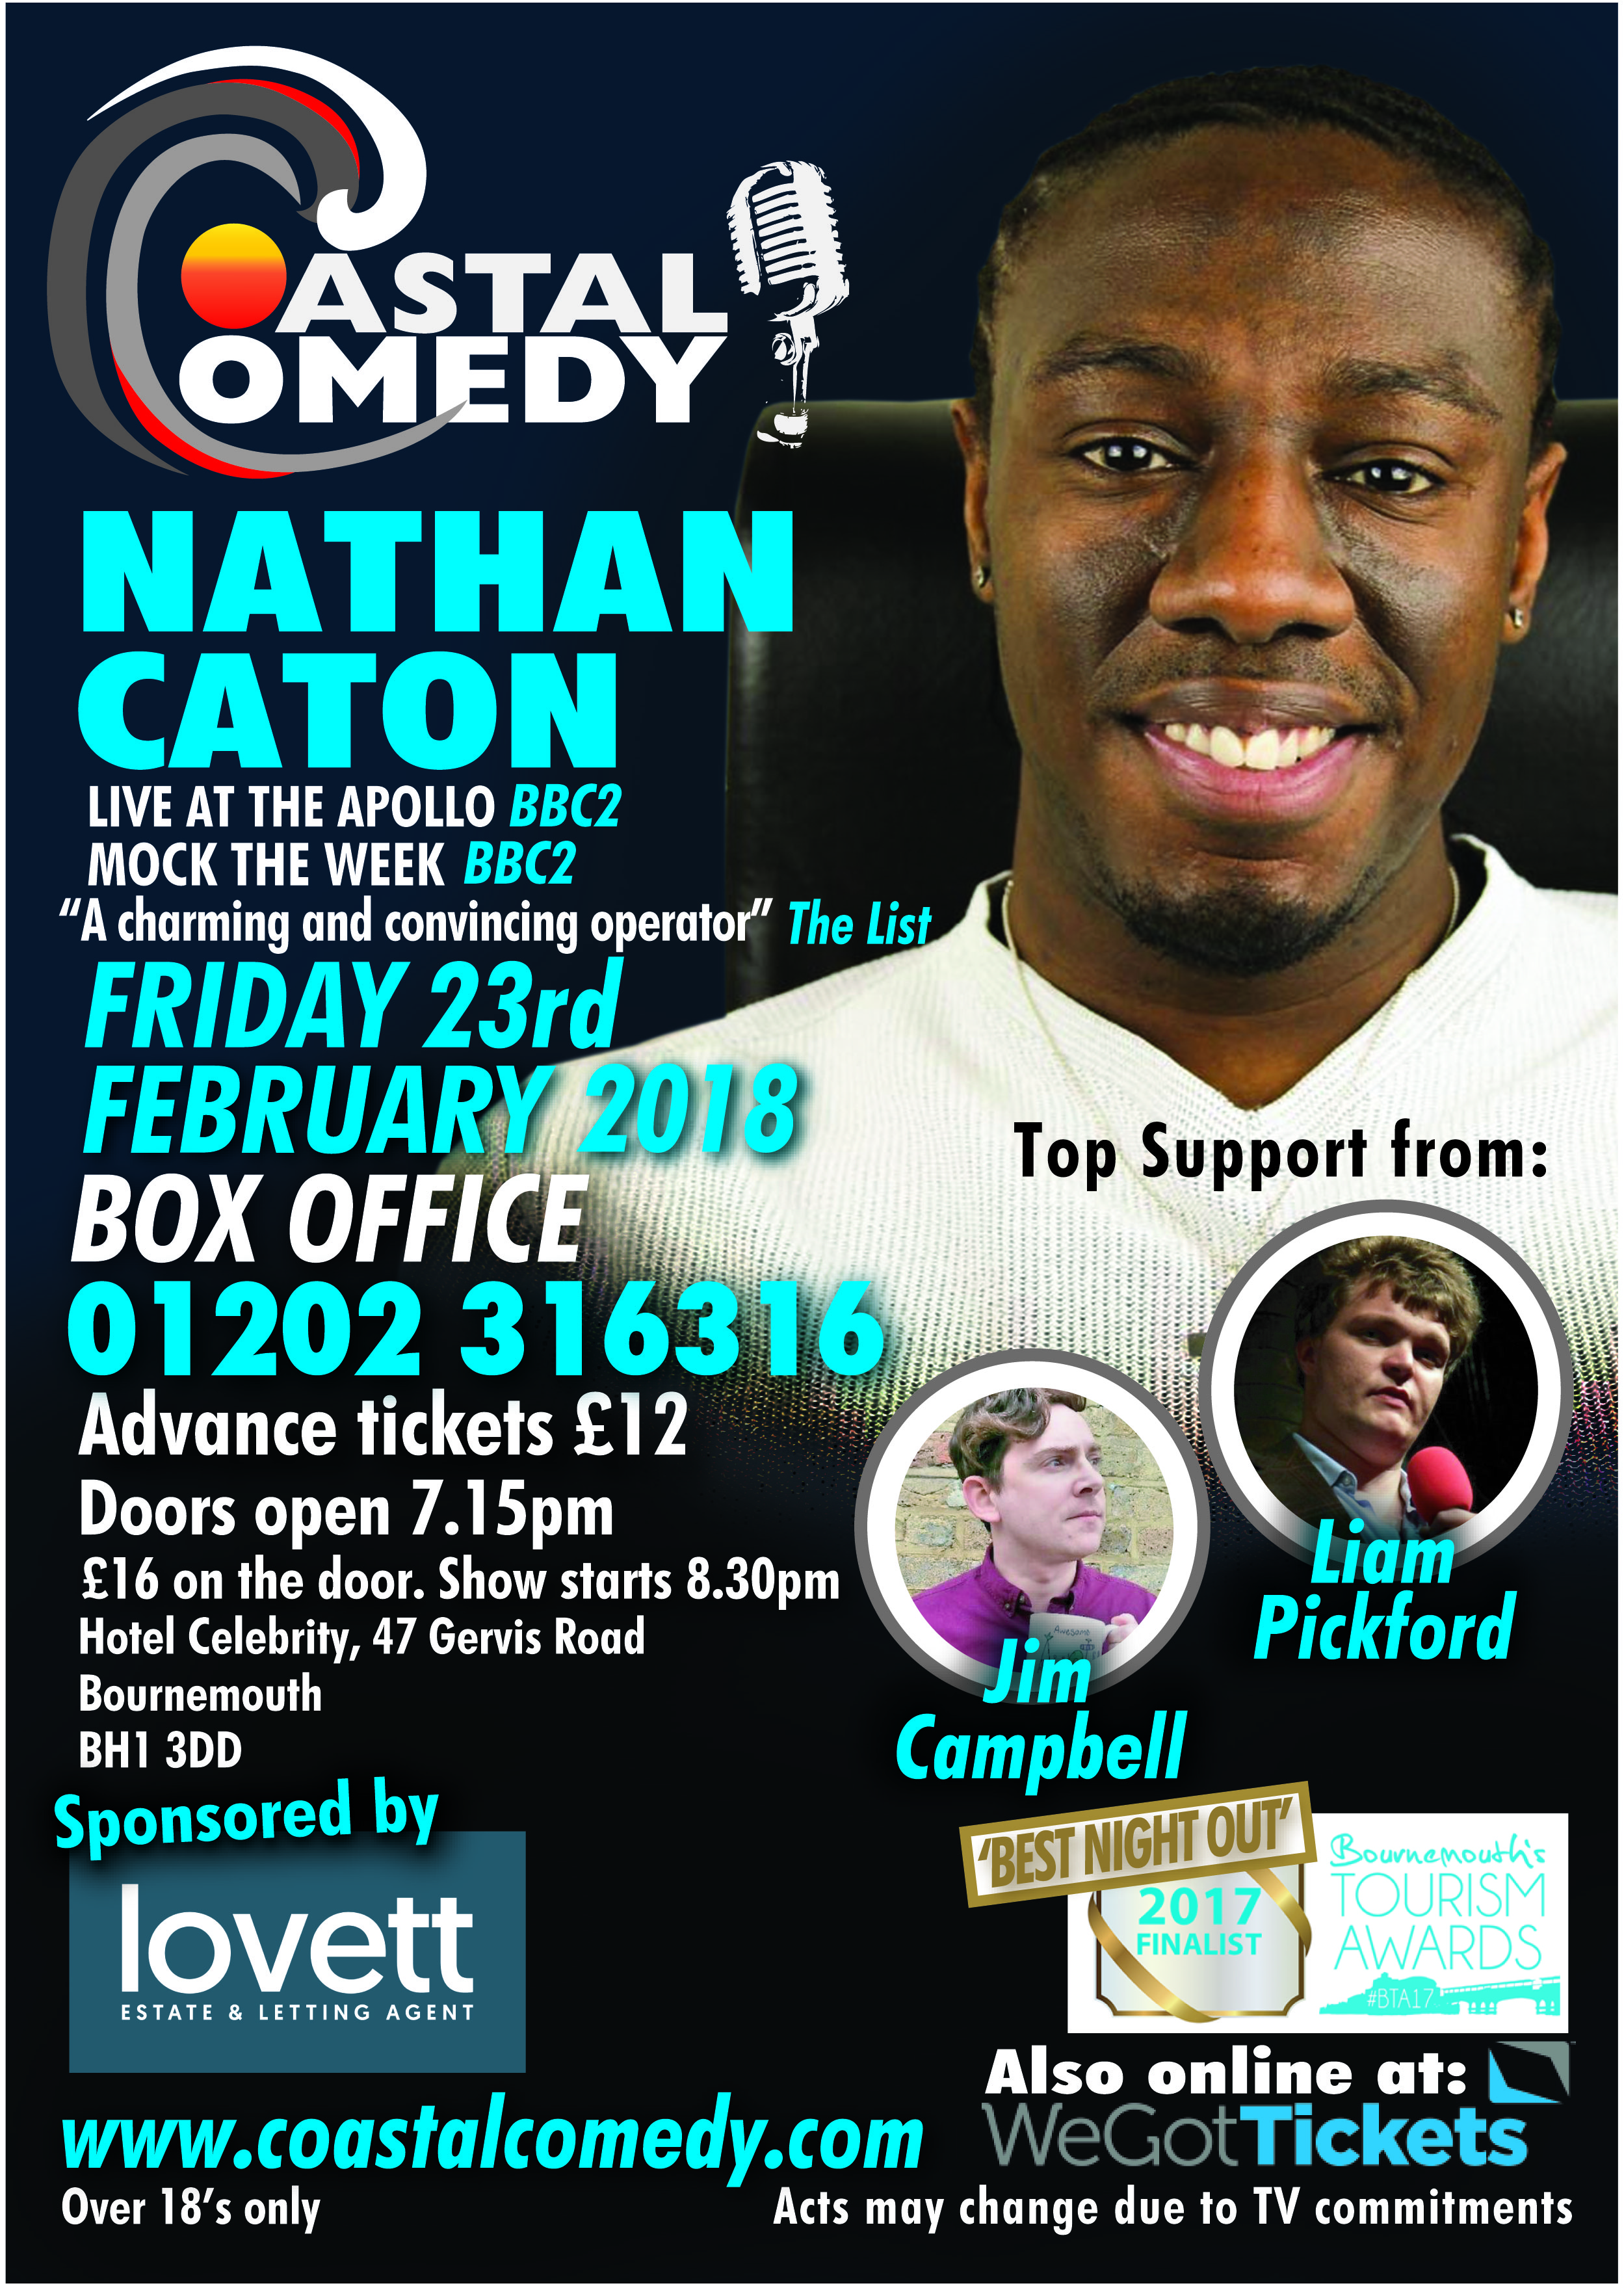 Nathan Caton, stand-up, best comedy club, Lymington, Hampshire, southampton, comedian, comic, jaggers, comedy, stand up, TV, Bournemouth, Dorset, show, Coastal, BIC, LOL,